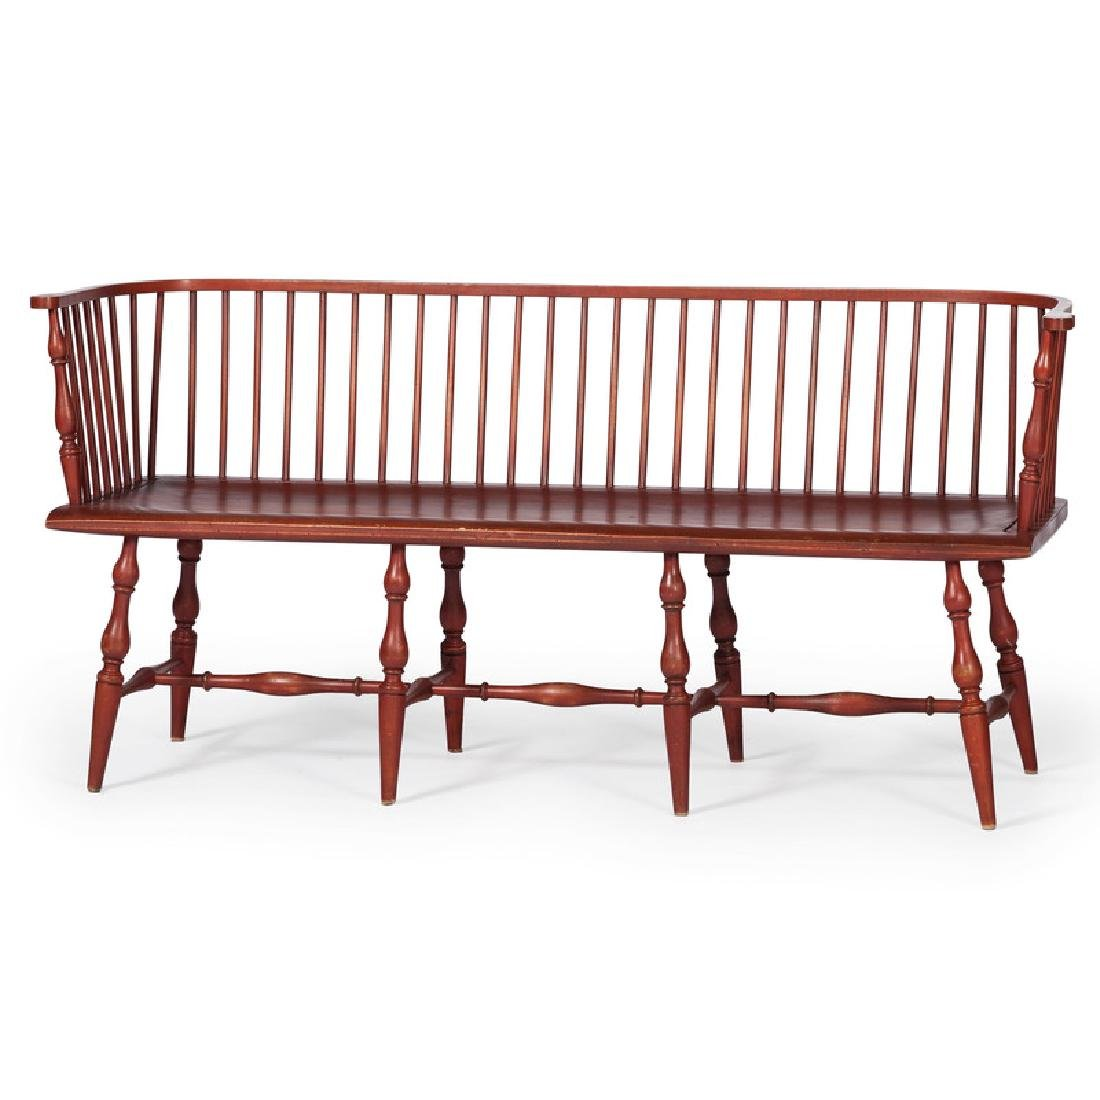 David T. Smith Settle Bench